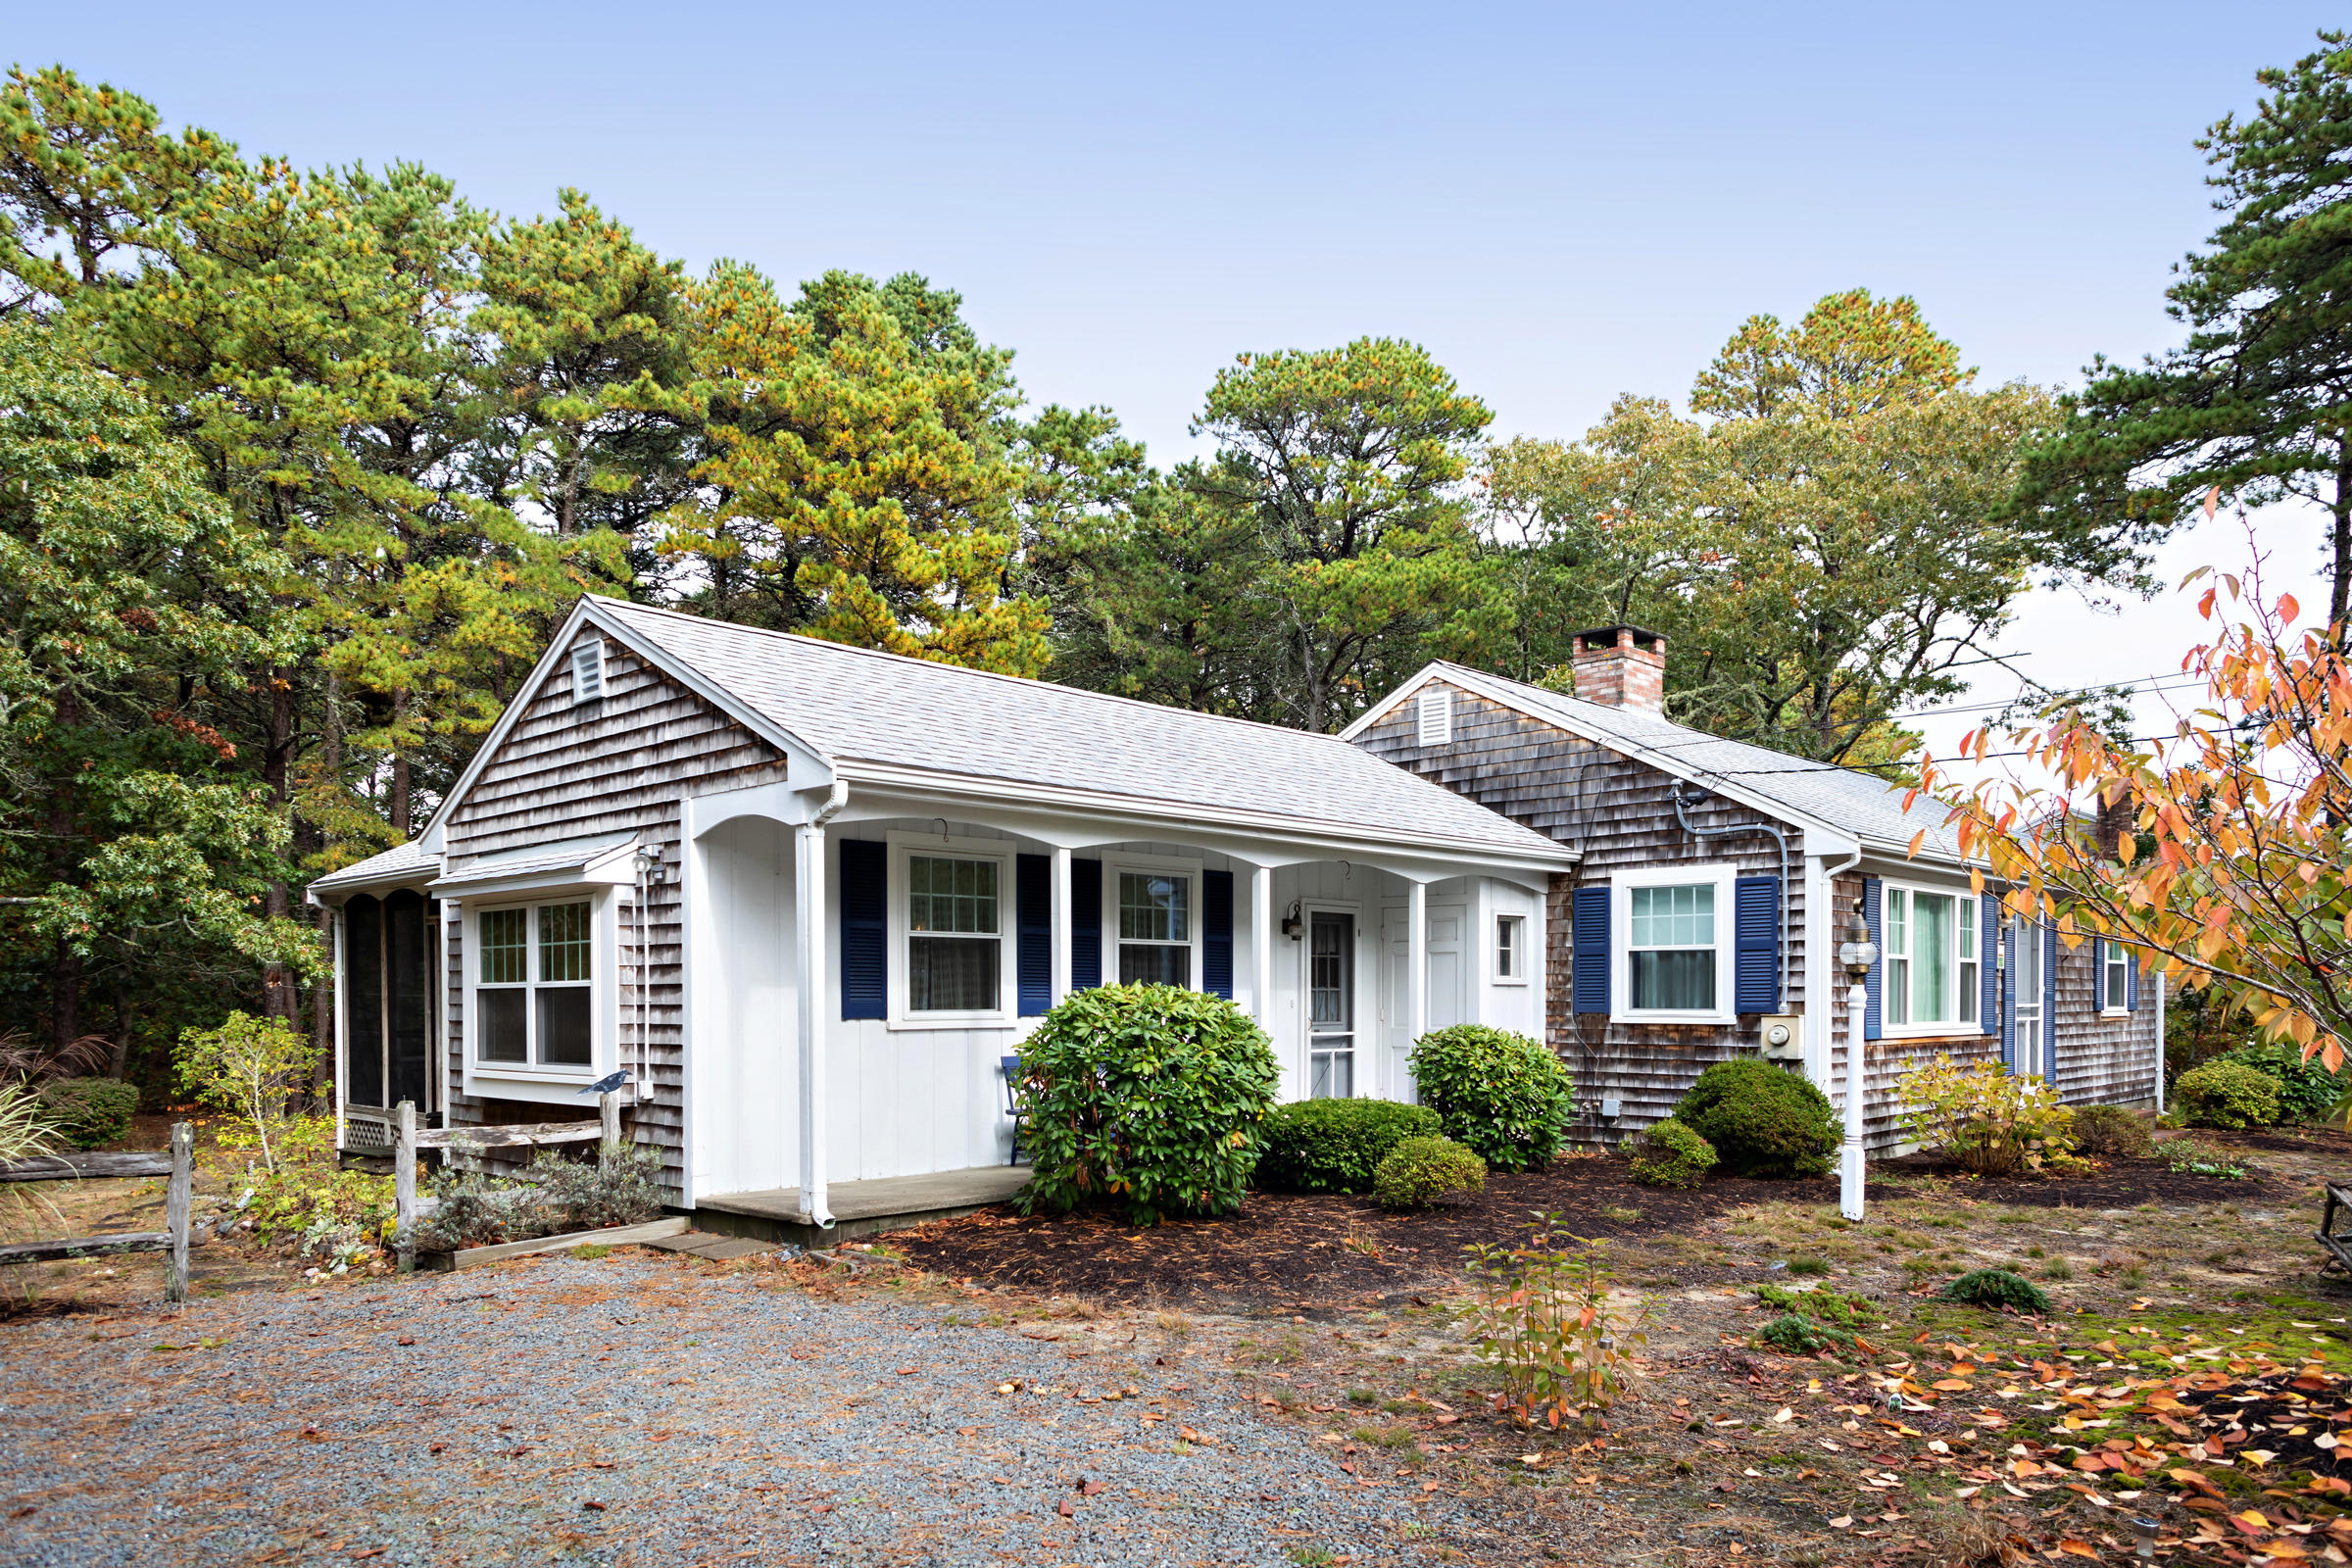 800 Governor Prence Road, Eastham MA, 02642 details